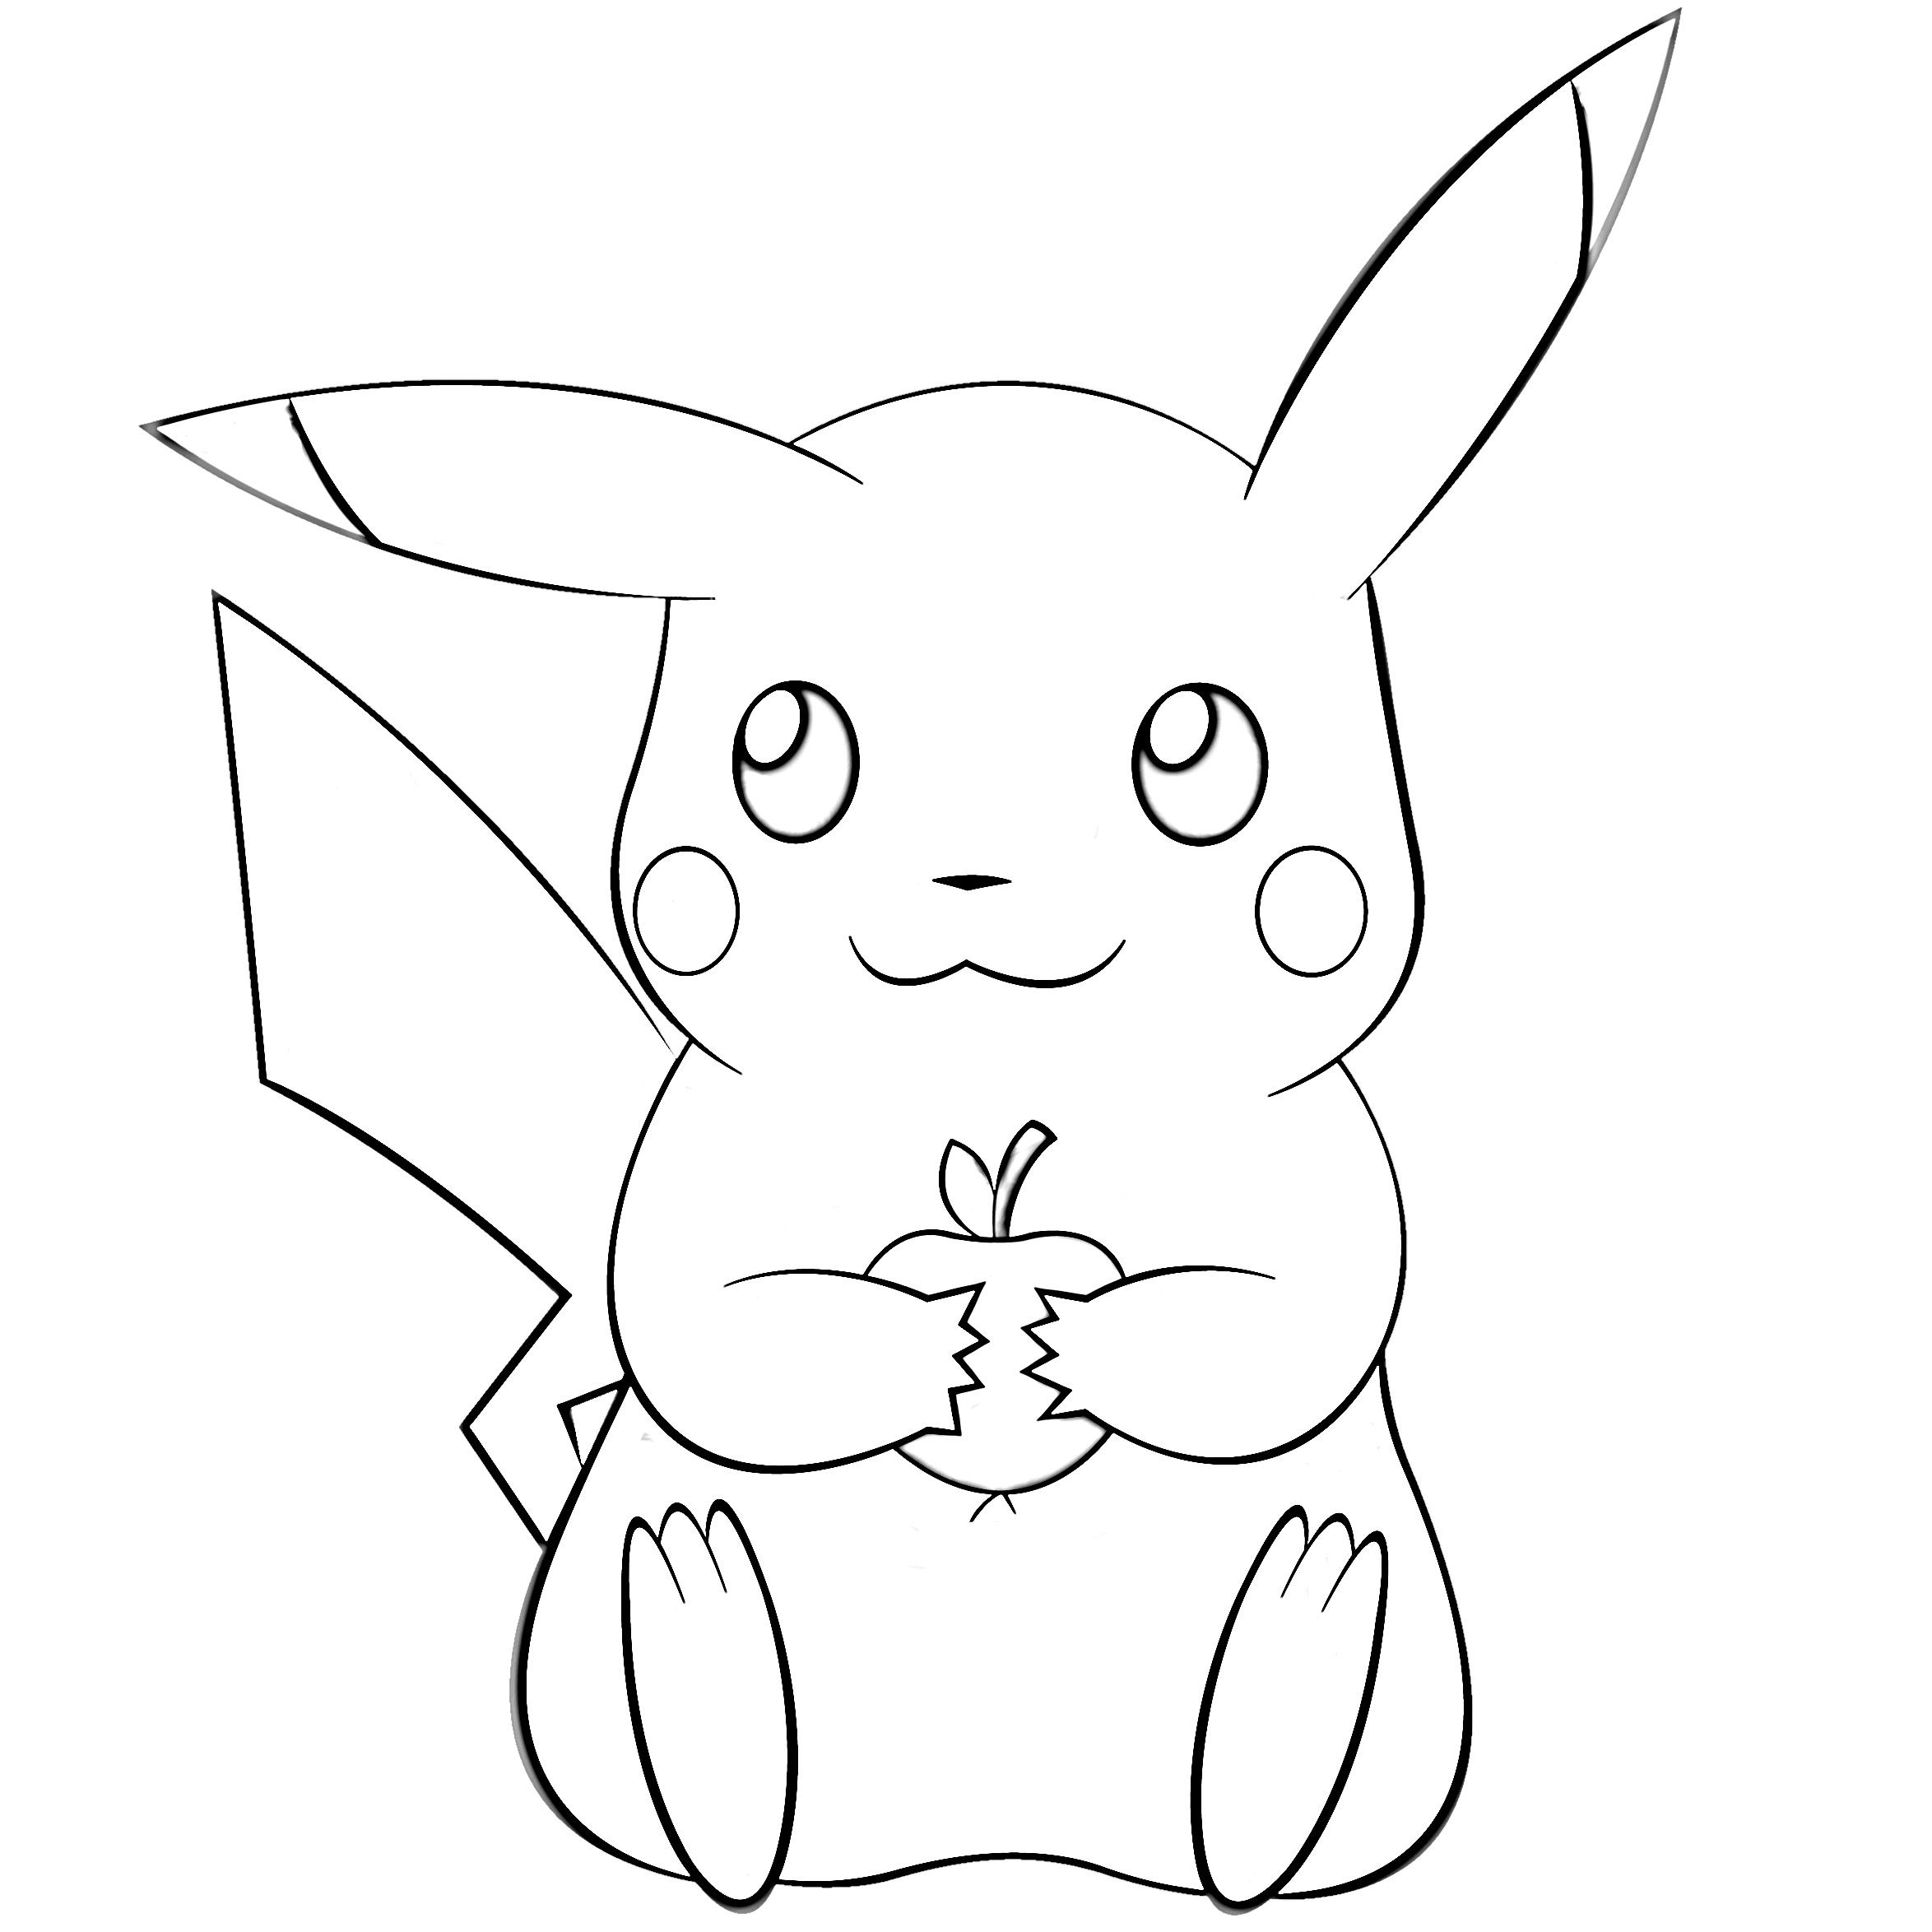 cute adorable pikachu coloring pages printable pikachu coloring pages for kids cool2bkids cute coloring pikachu pages adorable